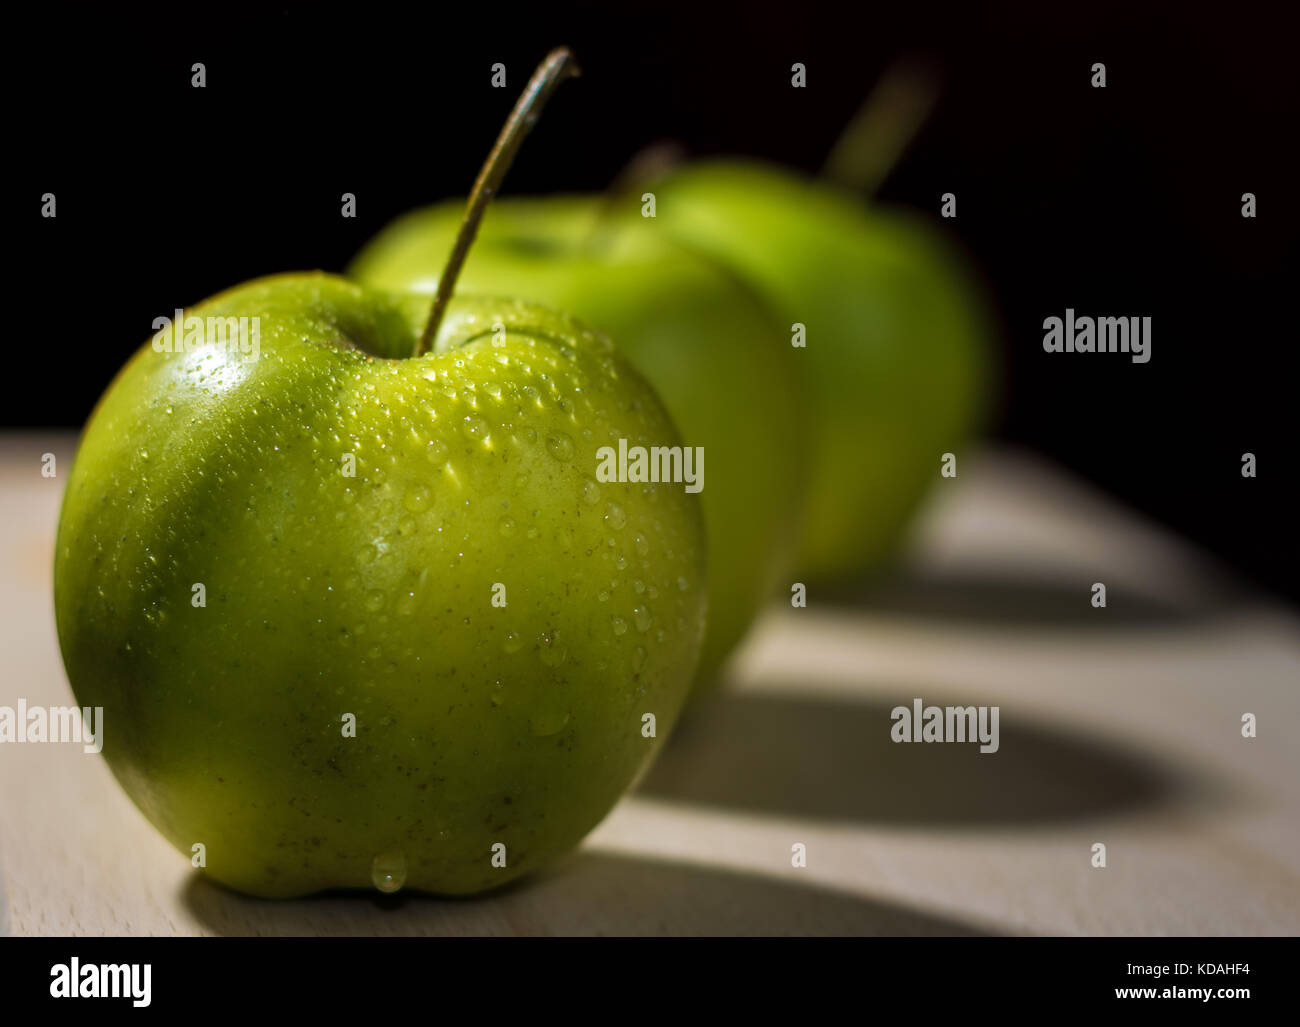 Three apples arranged in a diagonal line on a wooden surface with dark background - Stock Image